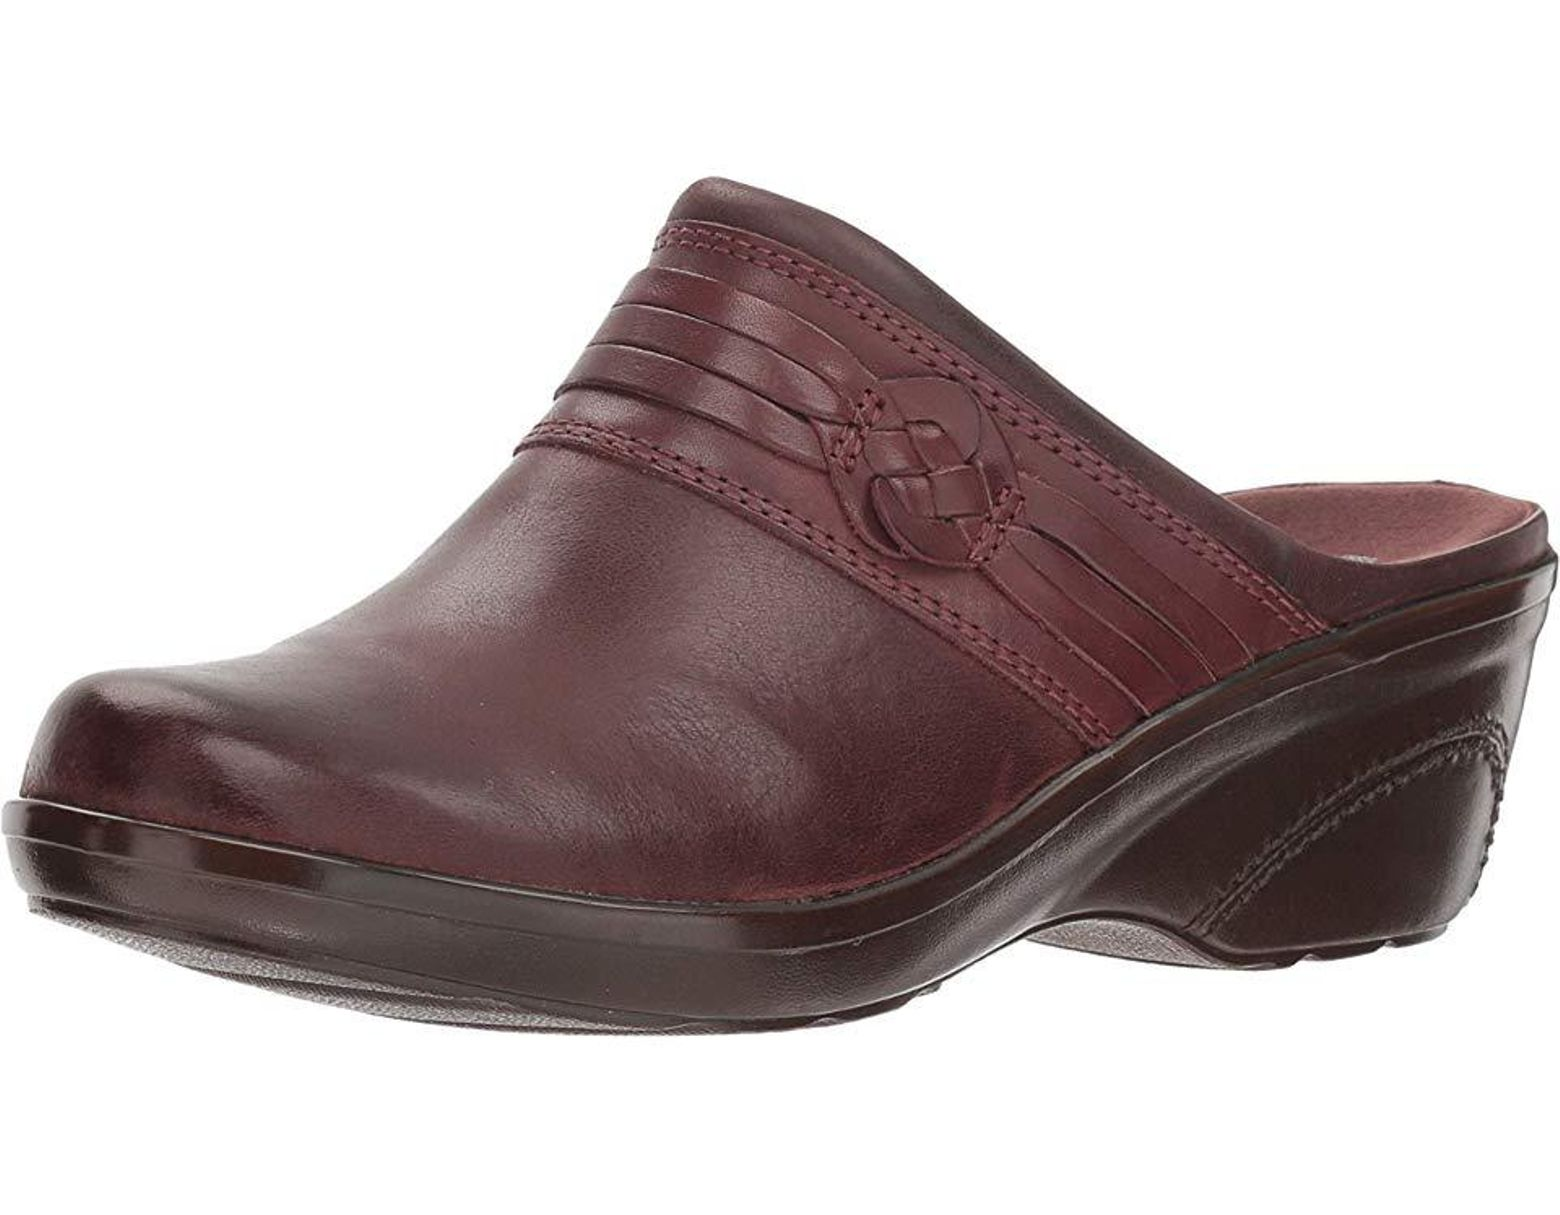 9bf8379d489aff Clarks Marion Jess (mahogany Leather) Shoes in Brown - Lyst